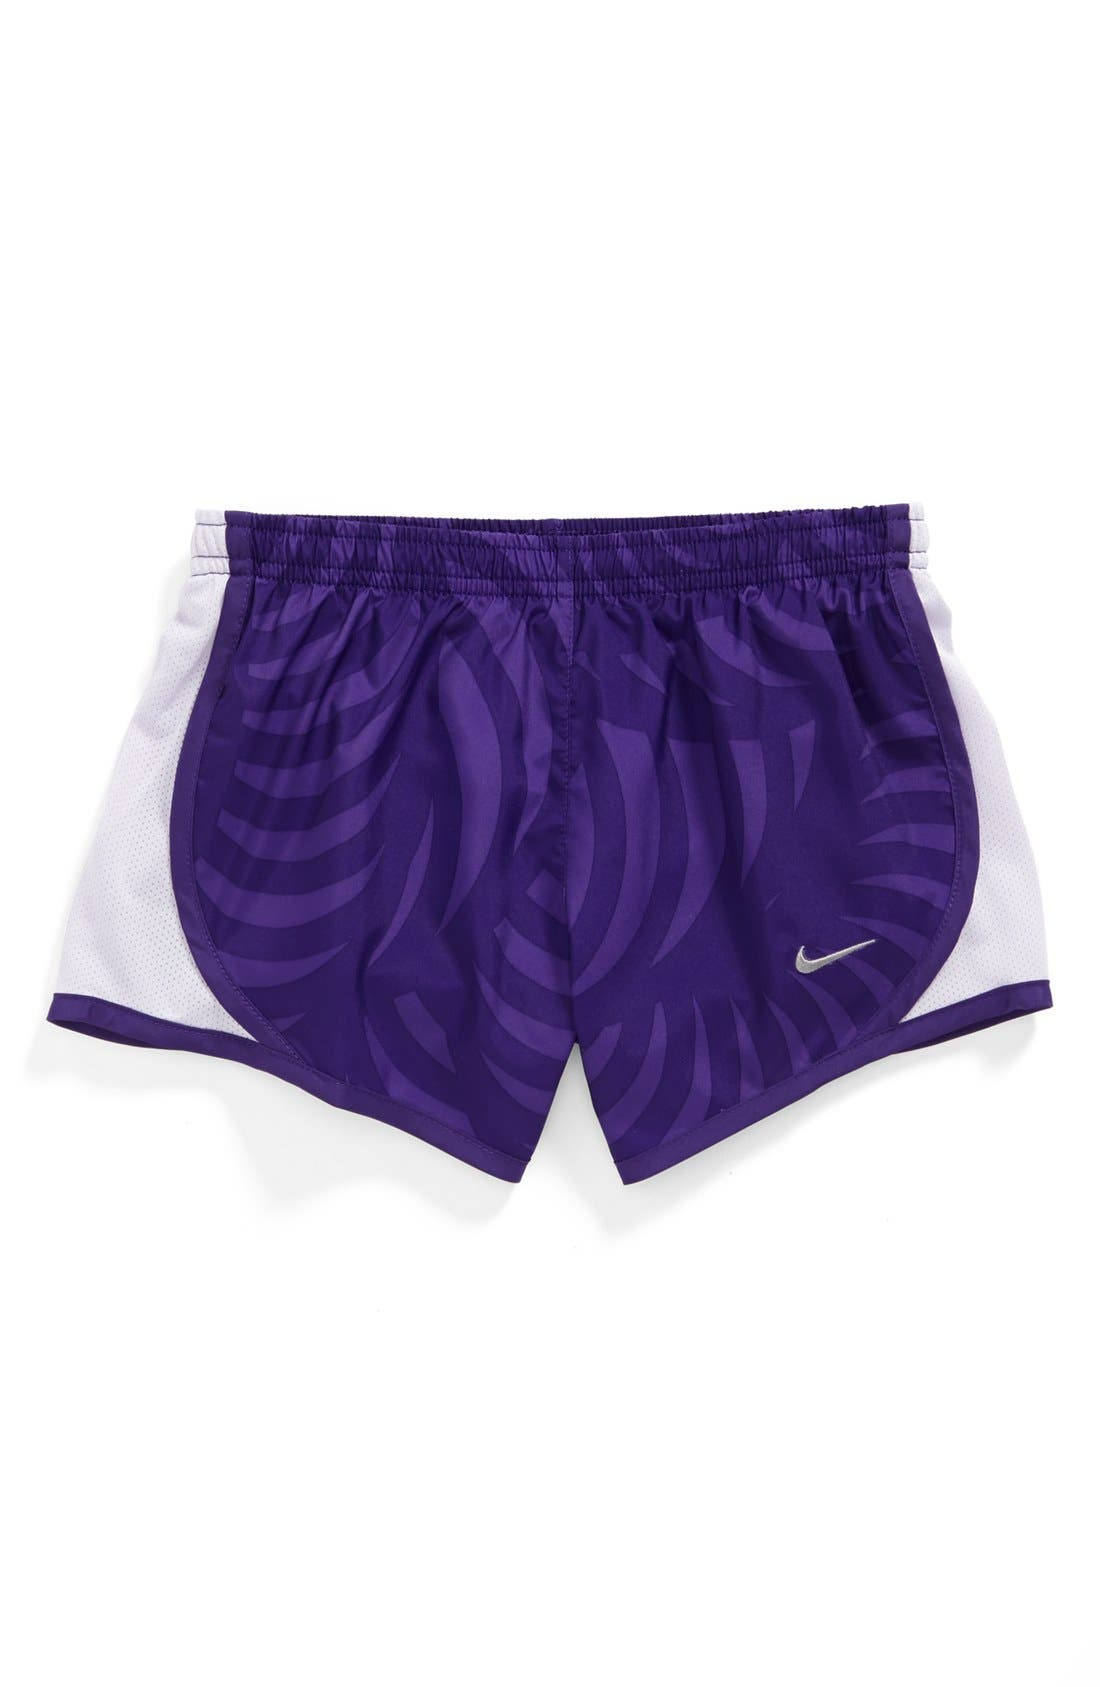 Alternate Image 1 Selected - Nike 'Tempo' Running Shorts (Little Girls & Big Girls)